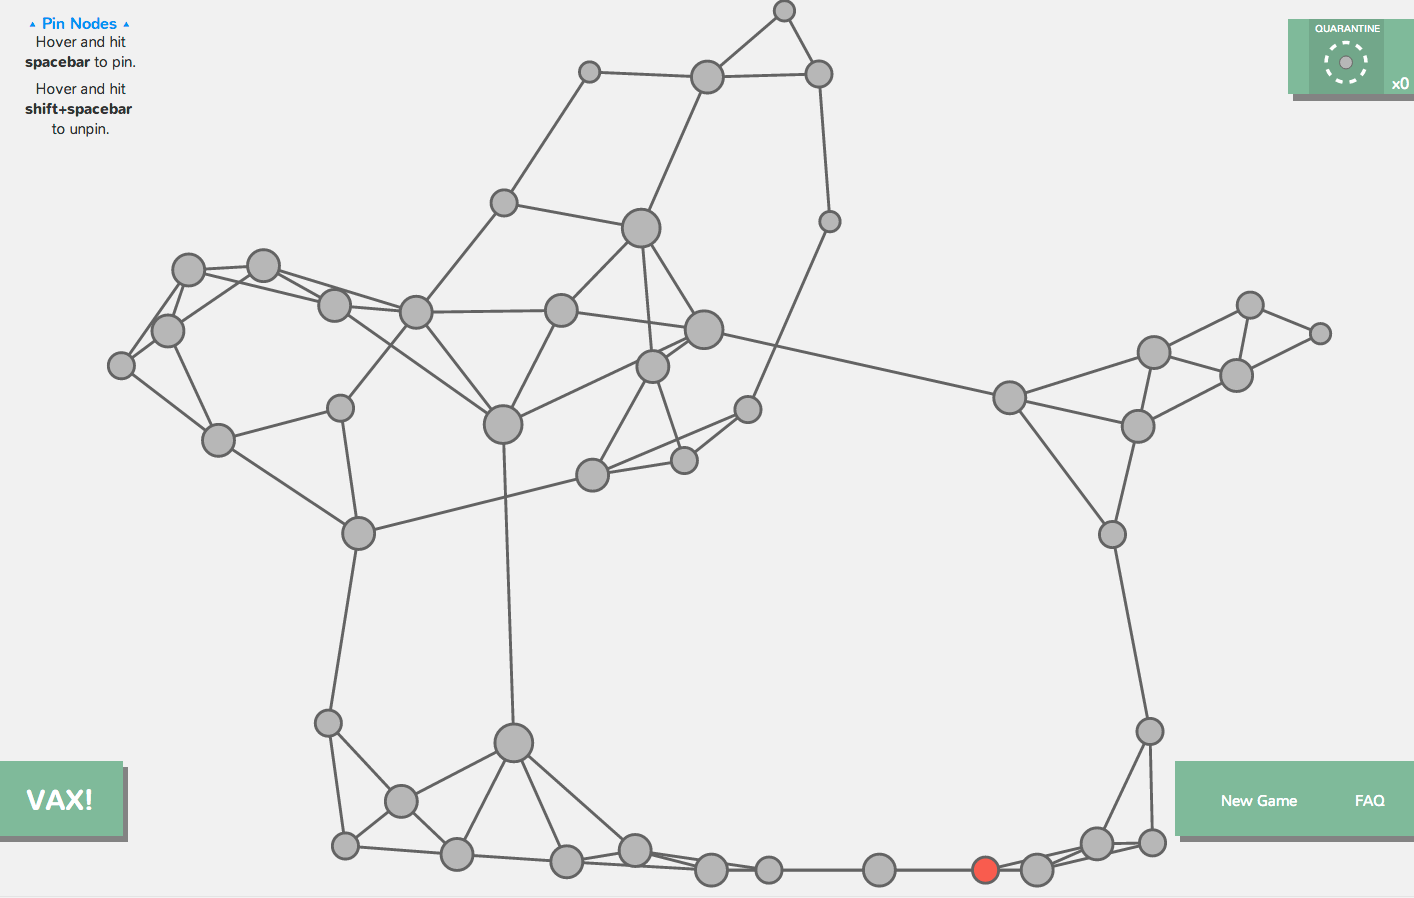 Network visualization game to understand how a disease